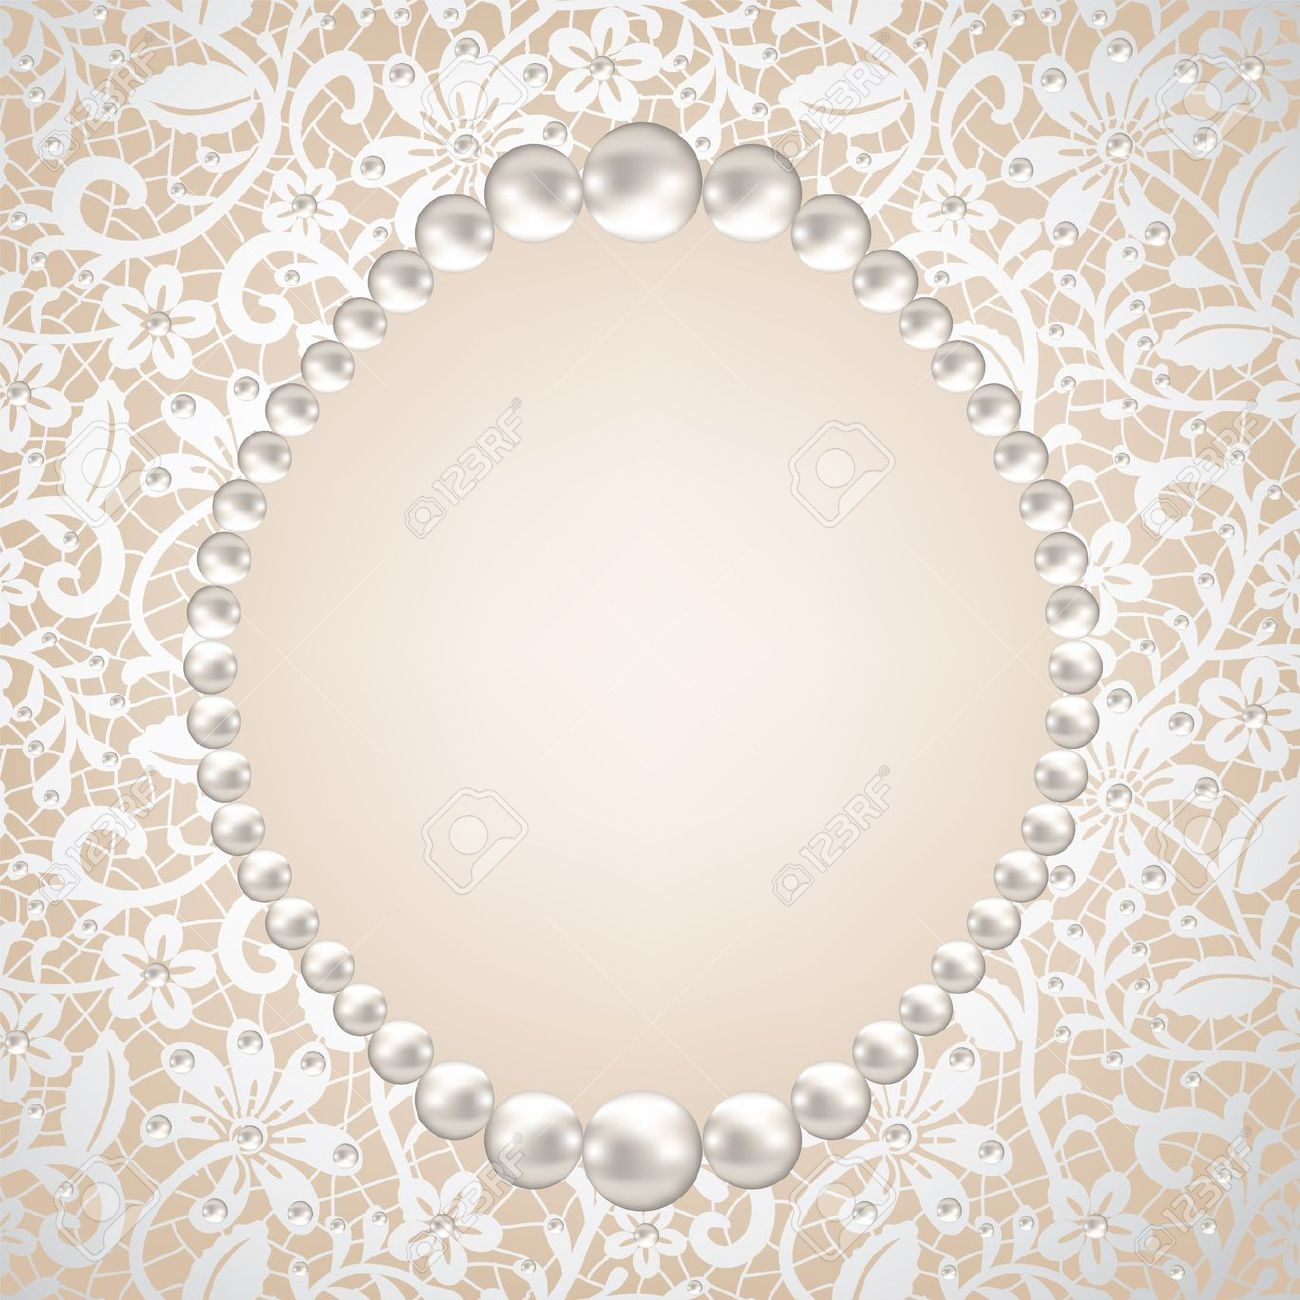 Pearls And Lace Clipart Free.